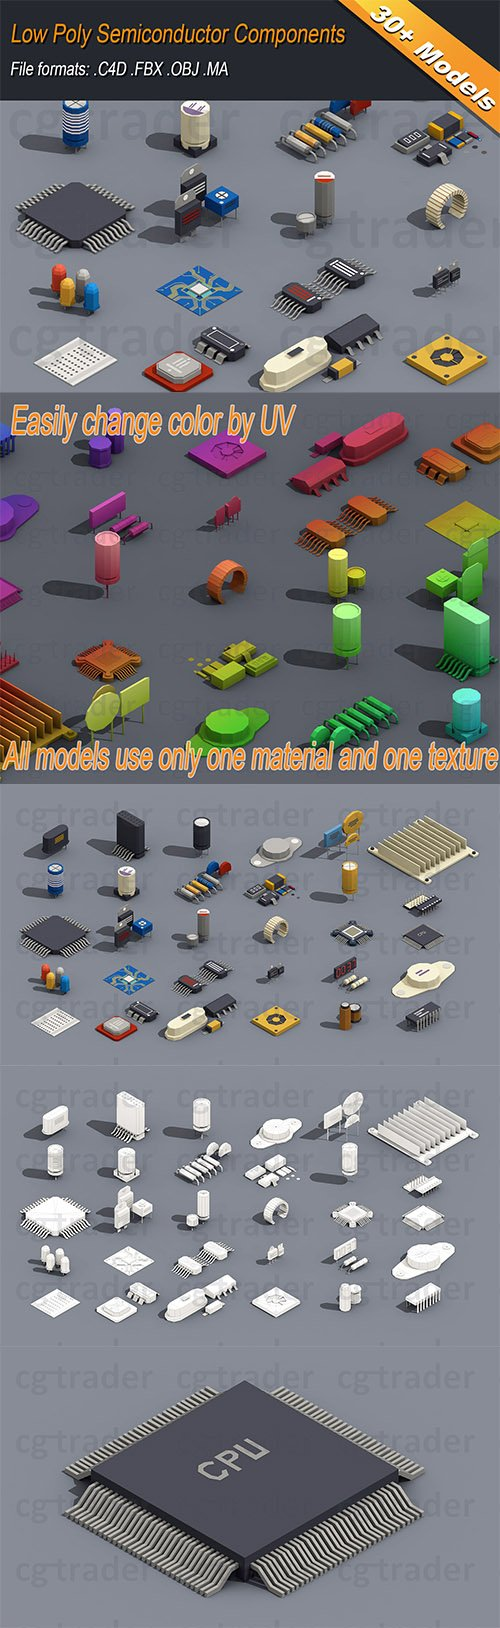 Low Poly Semiconductor Components Isometric Low-poly 3D model